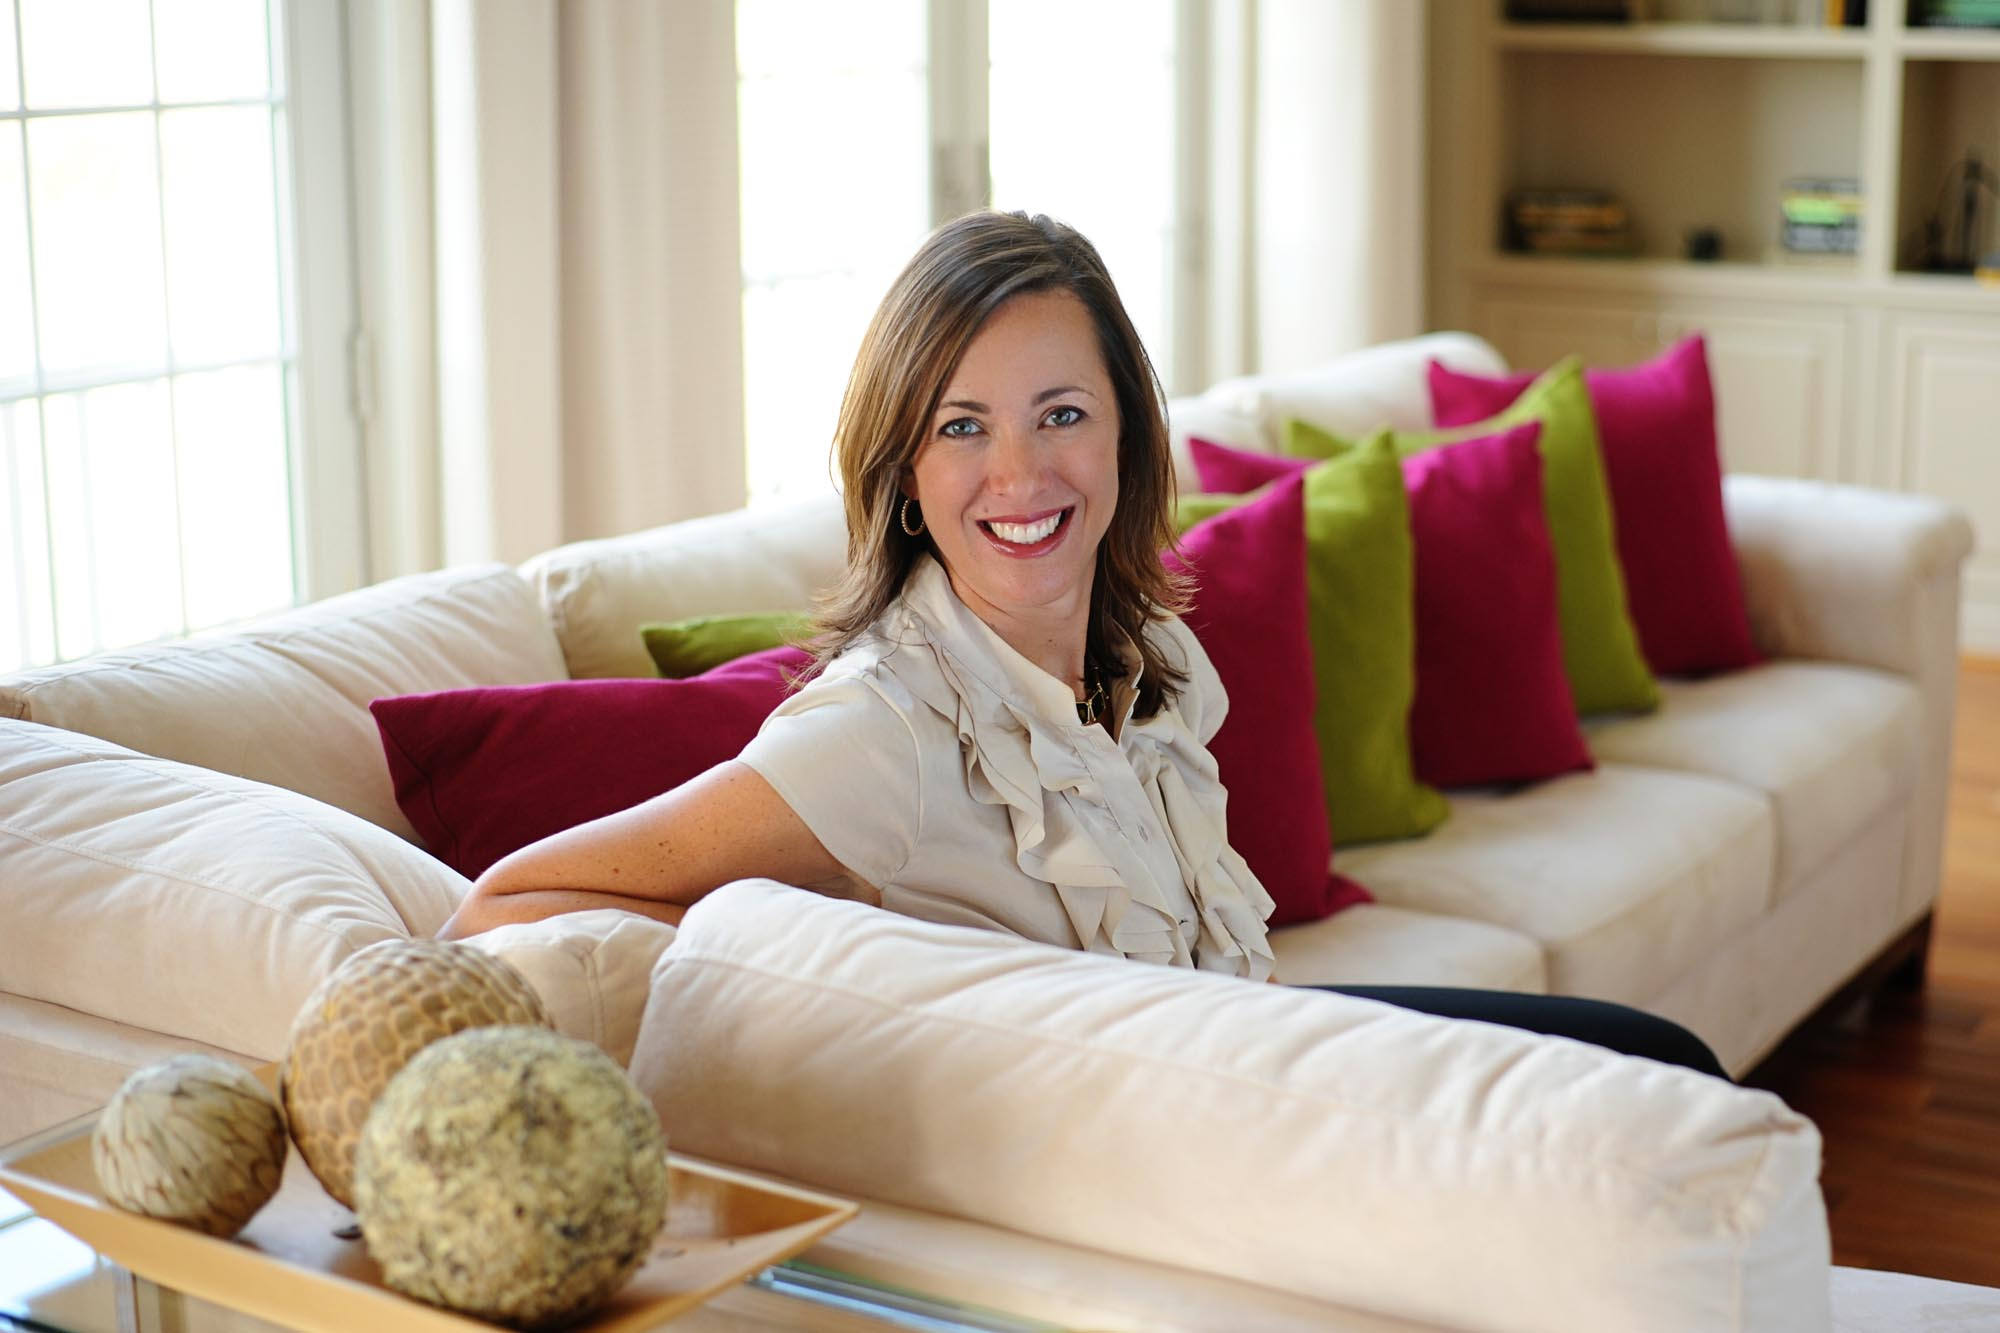 Meet April - April Force Pardoe is an award winning interior designer based in Maryland who has been helping clients solve their design puzzles for over 10 years.